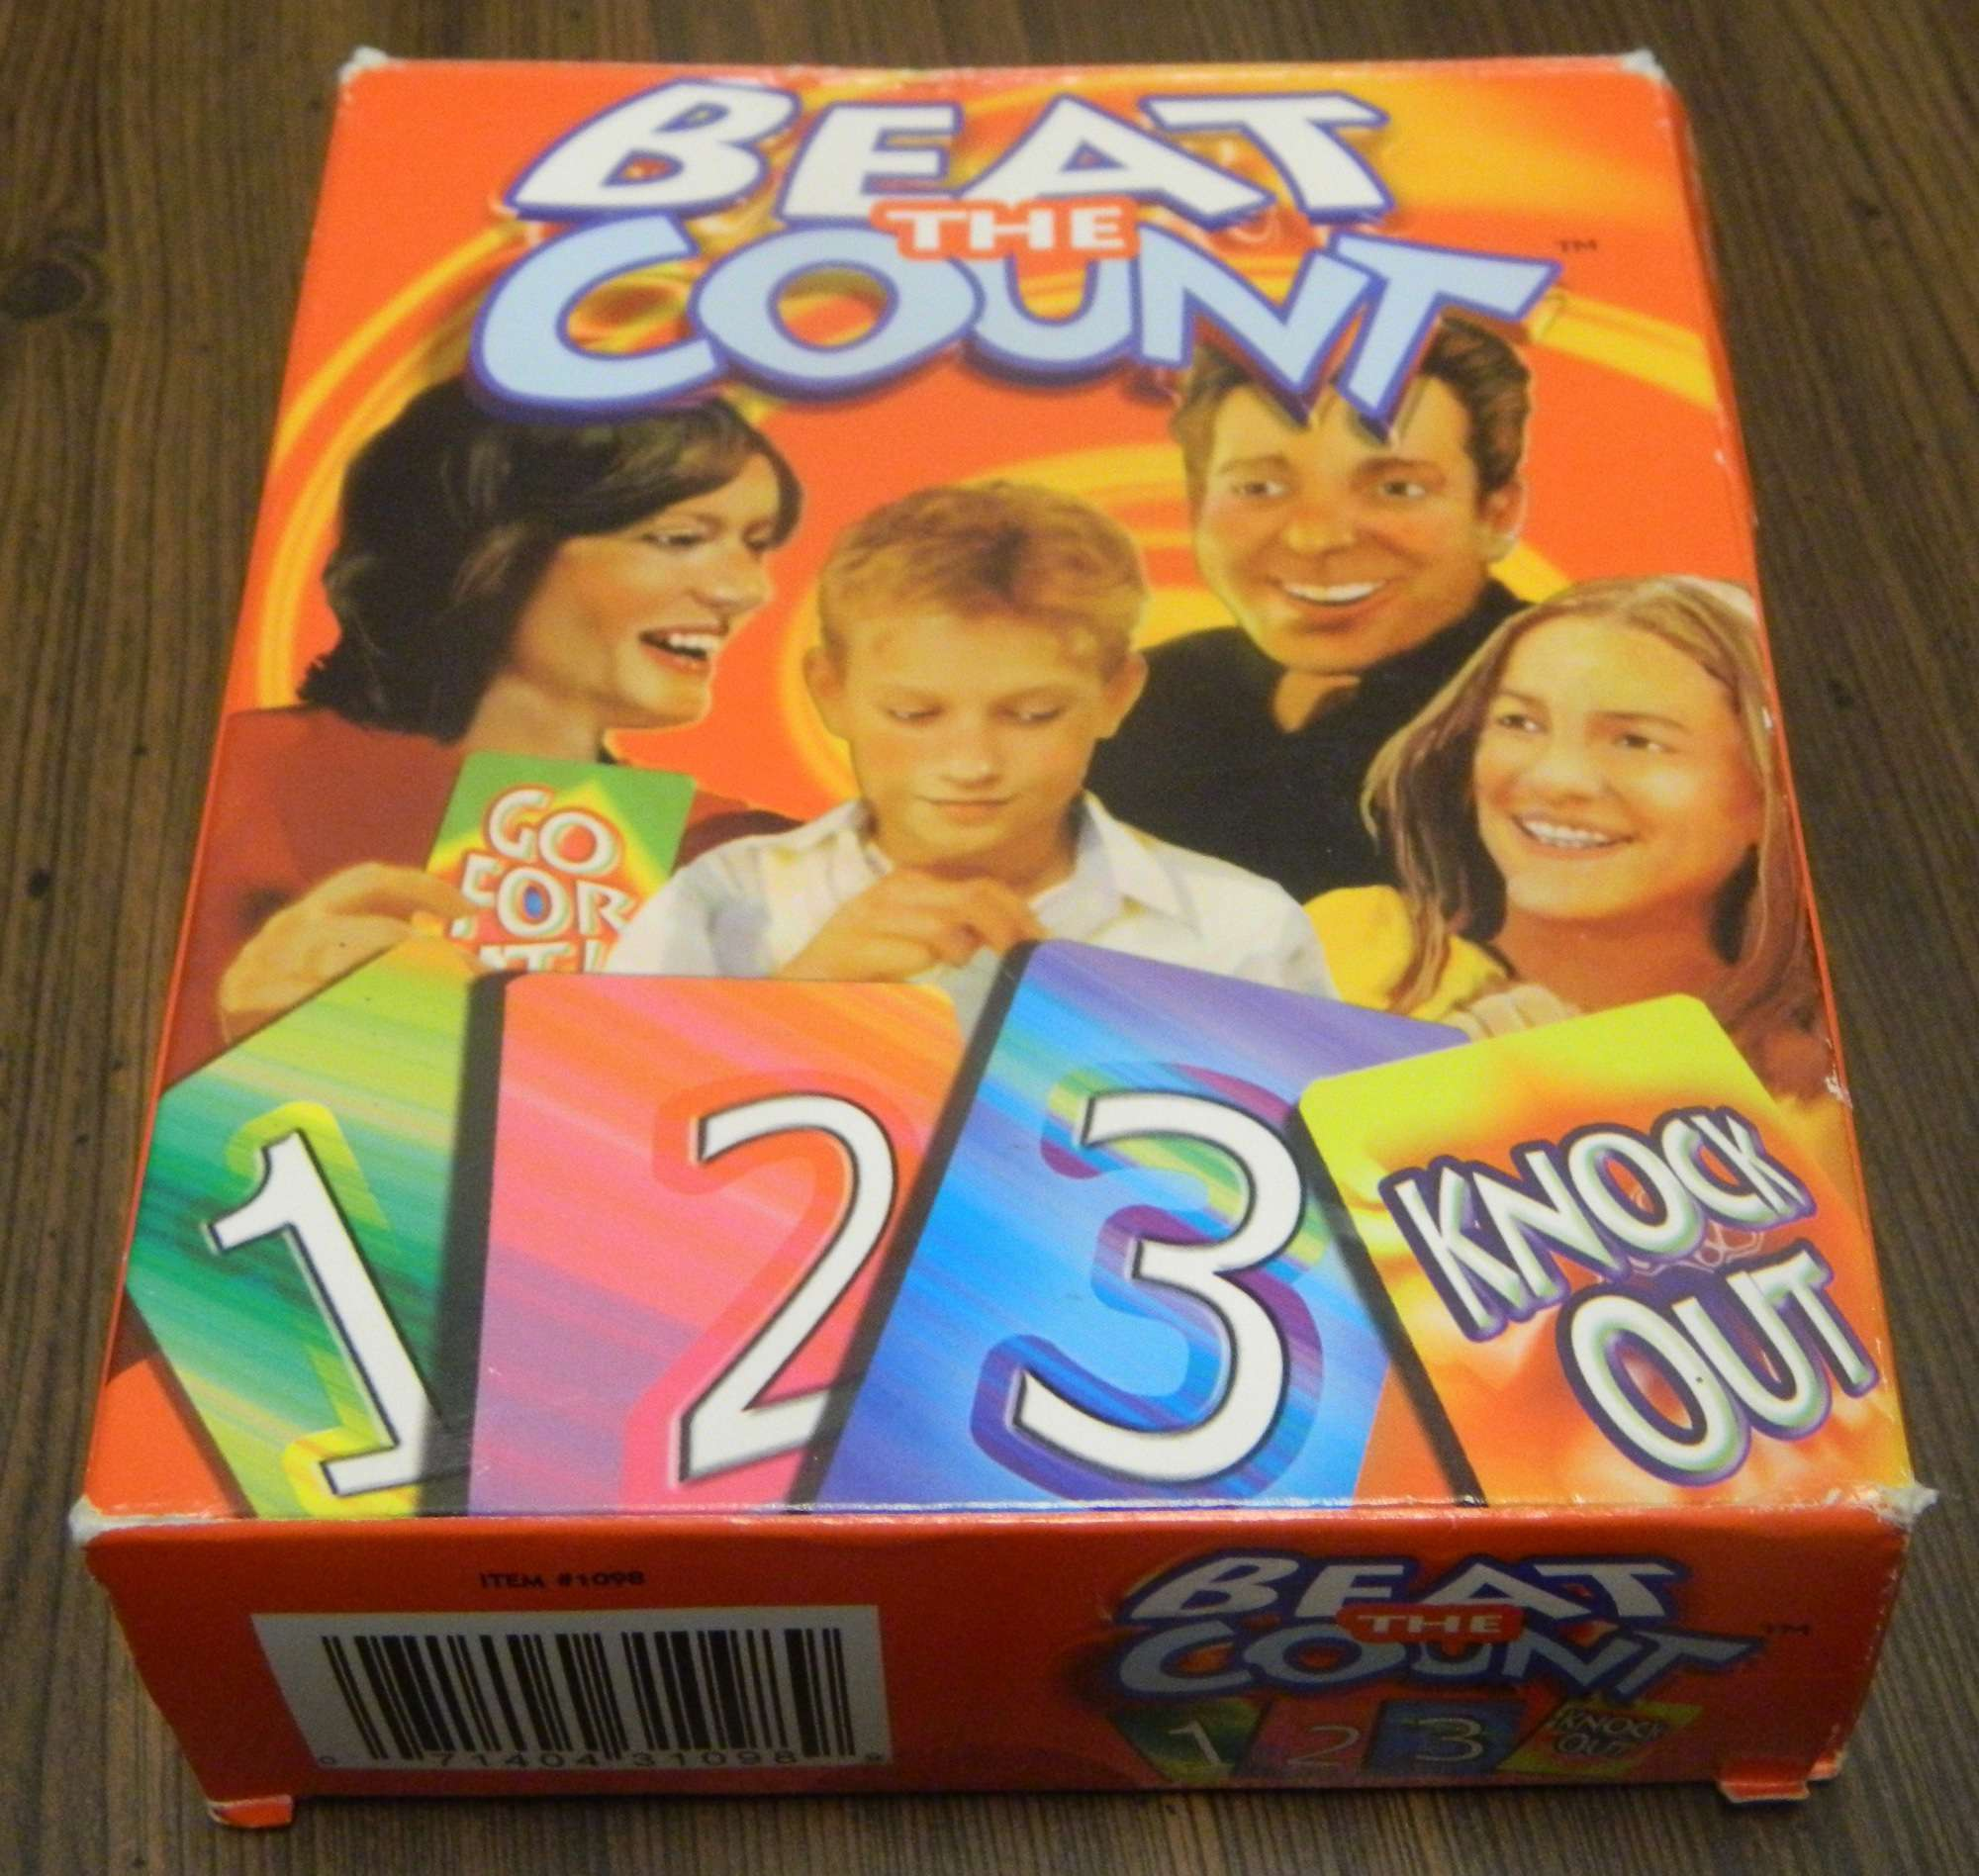 Beat the Count Box